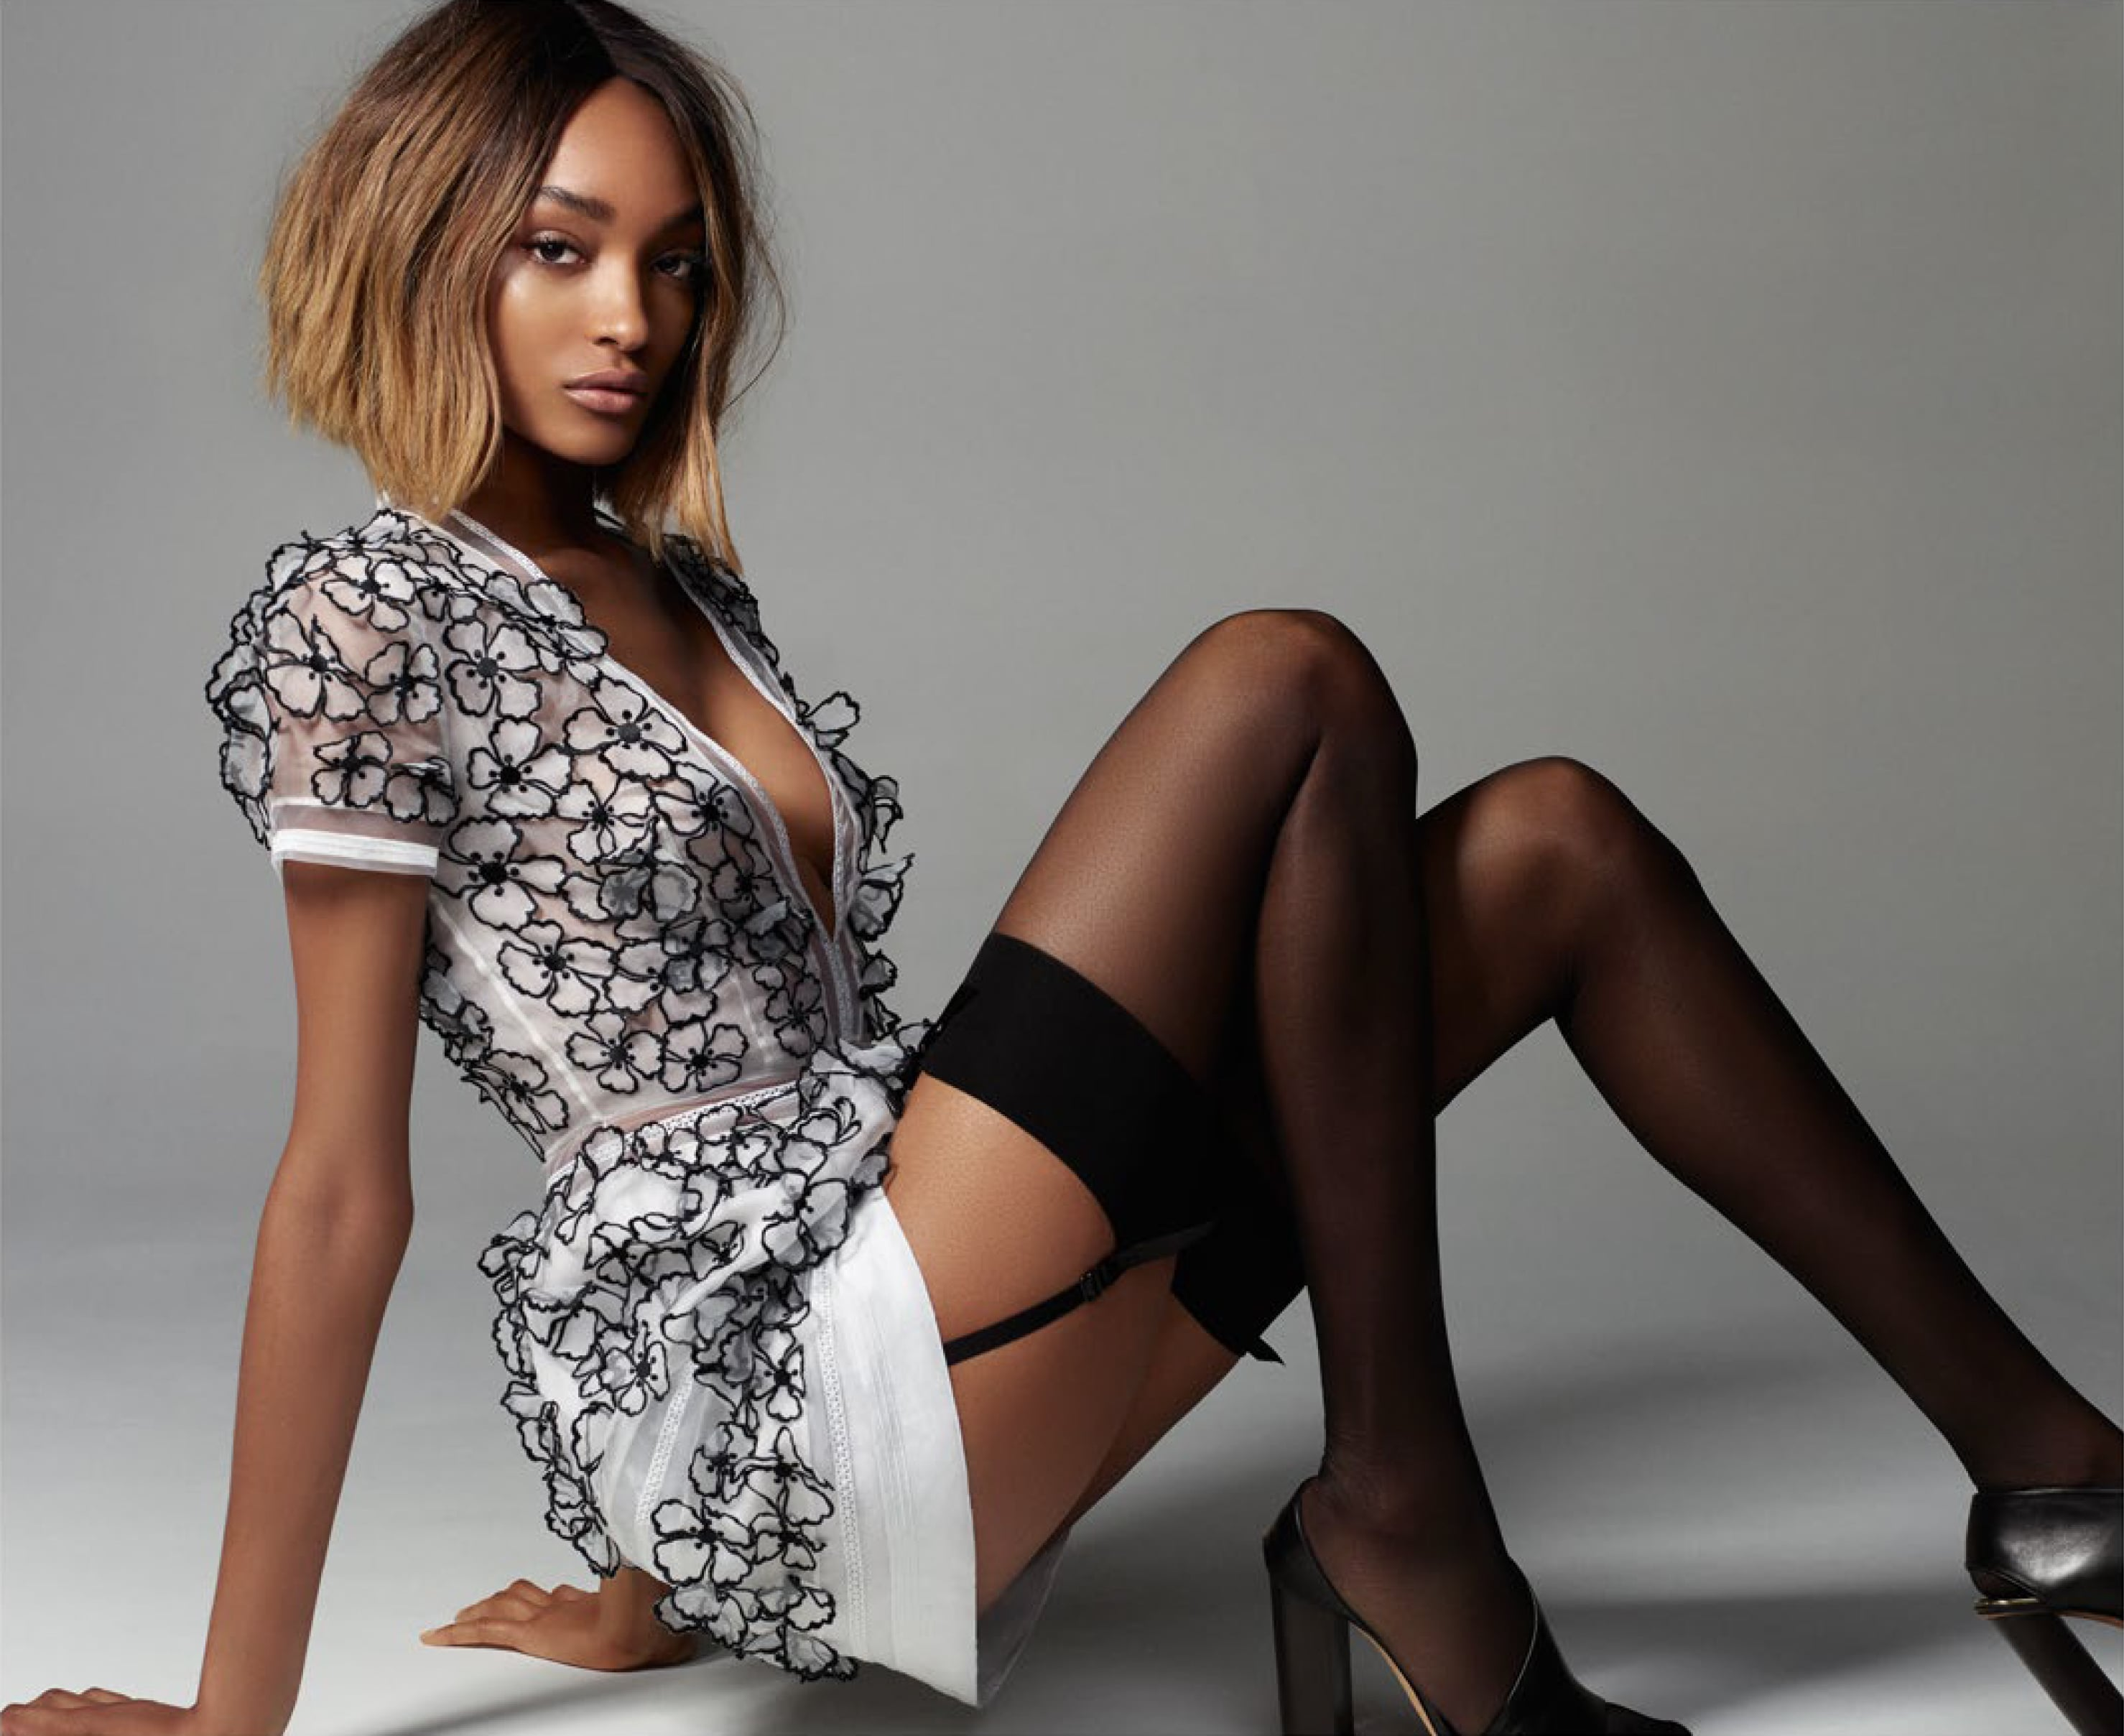 Jourdan Dunn Hot